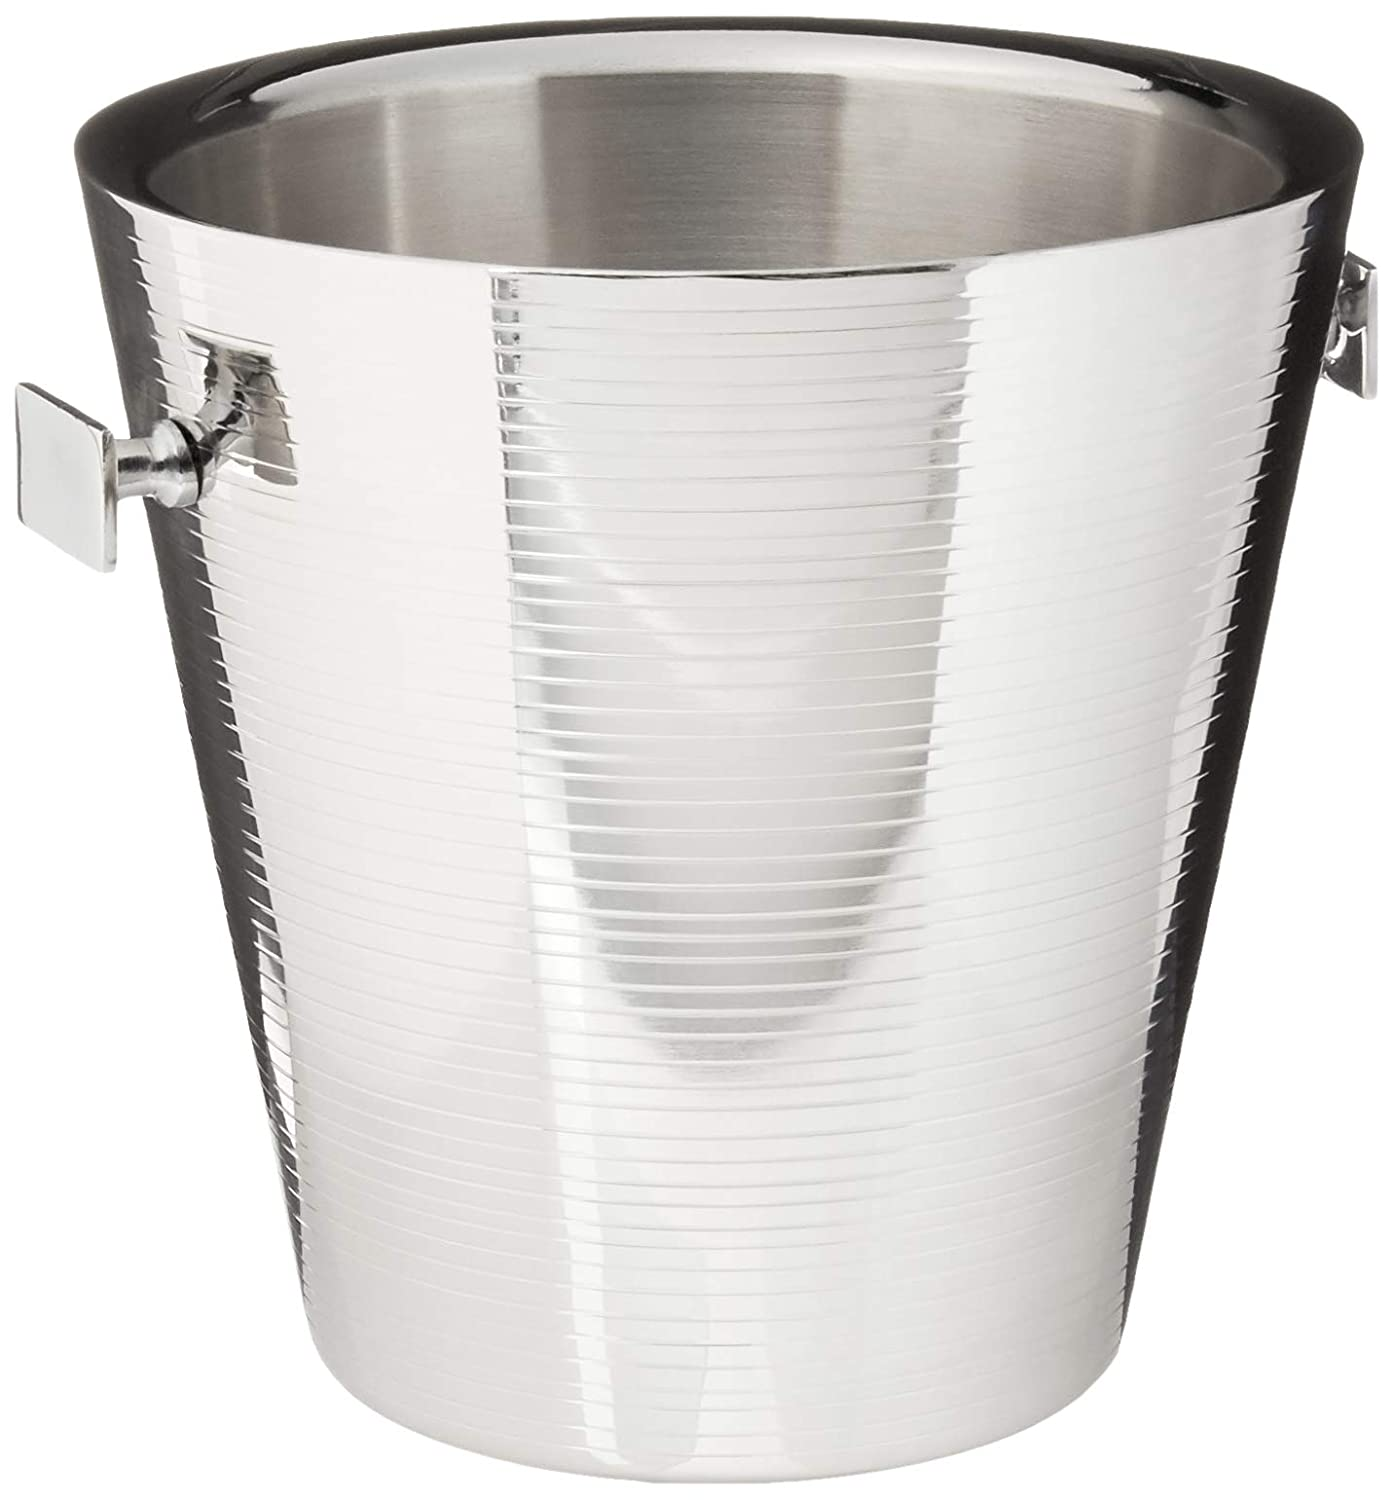 Elegance Lines Champagne Bucket Doublewall Stainless Steel